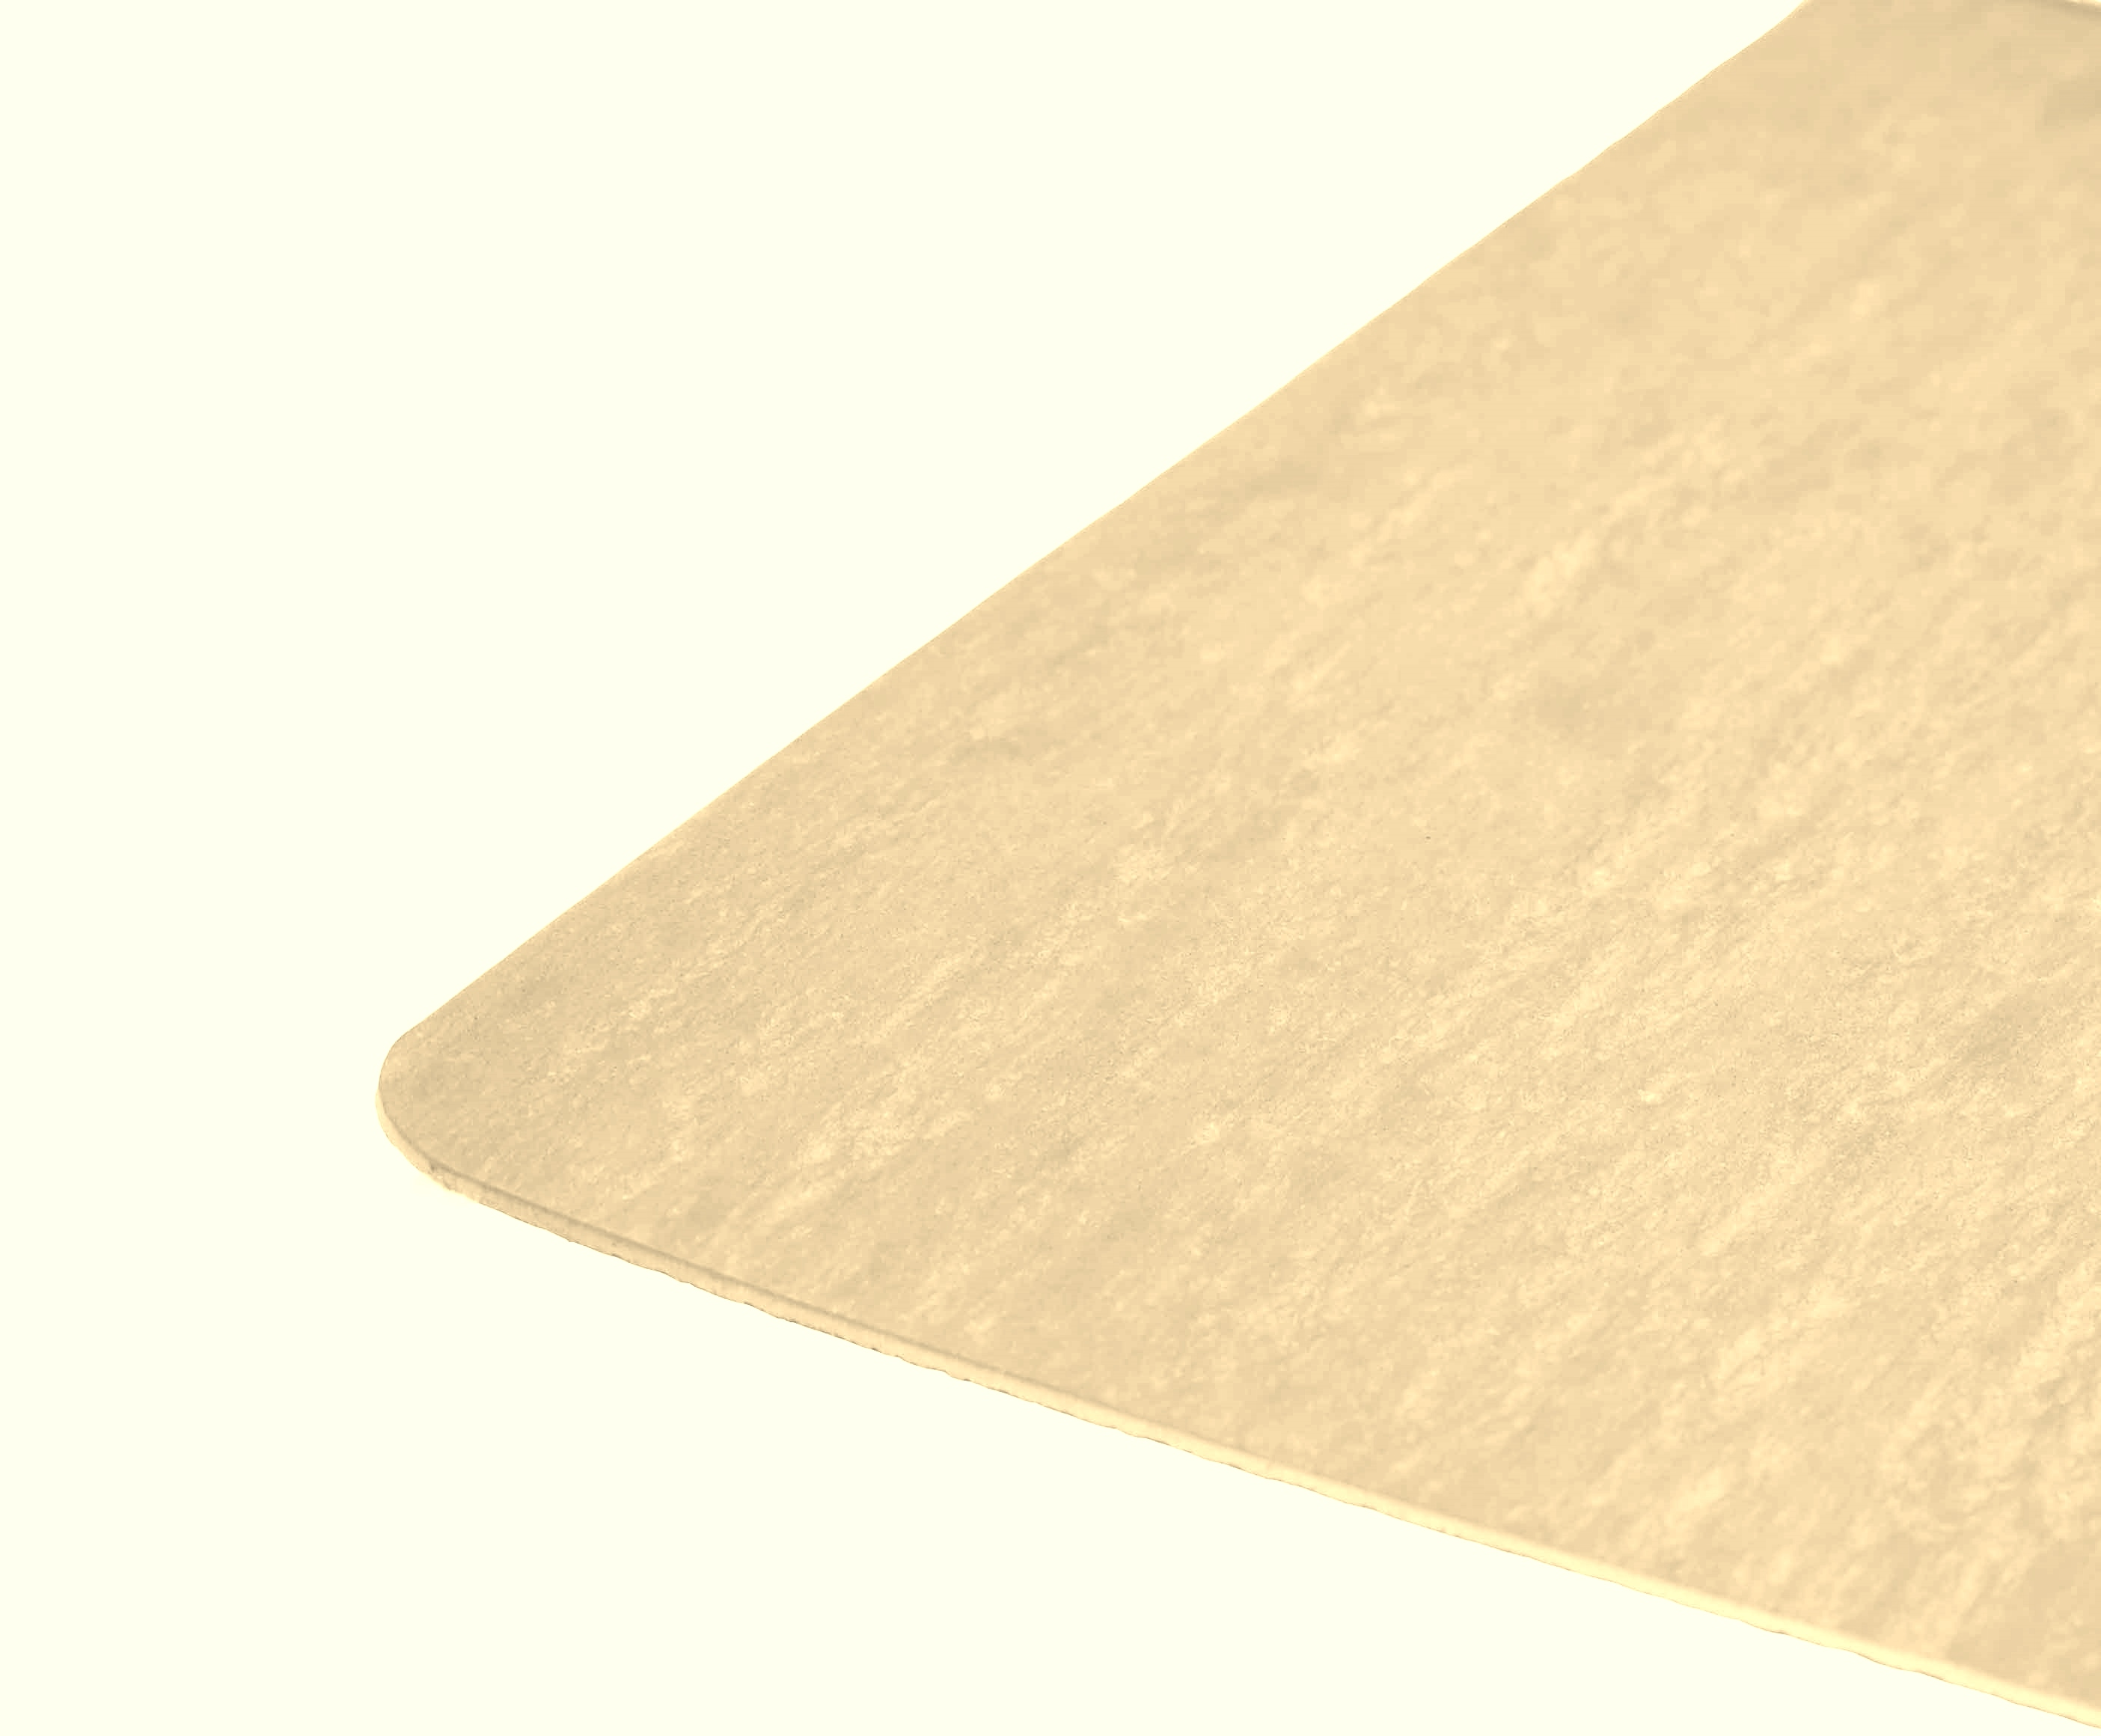 J201Red Silica Filled PTFE Jointing Sheet for use with Chemicals, Acids & Alkalis.